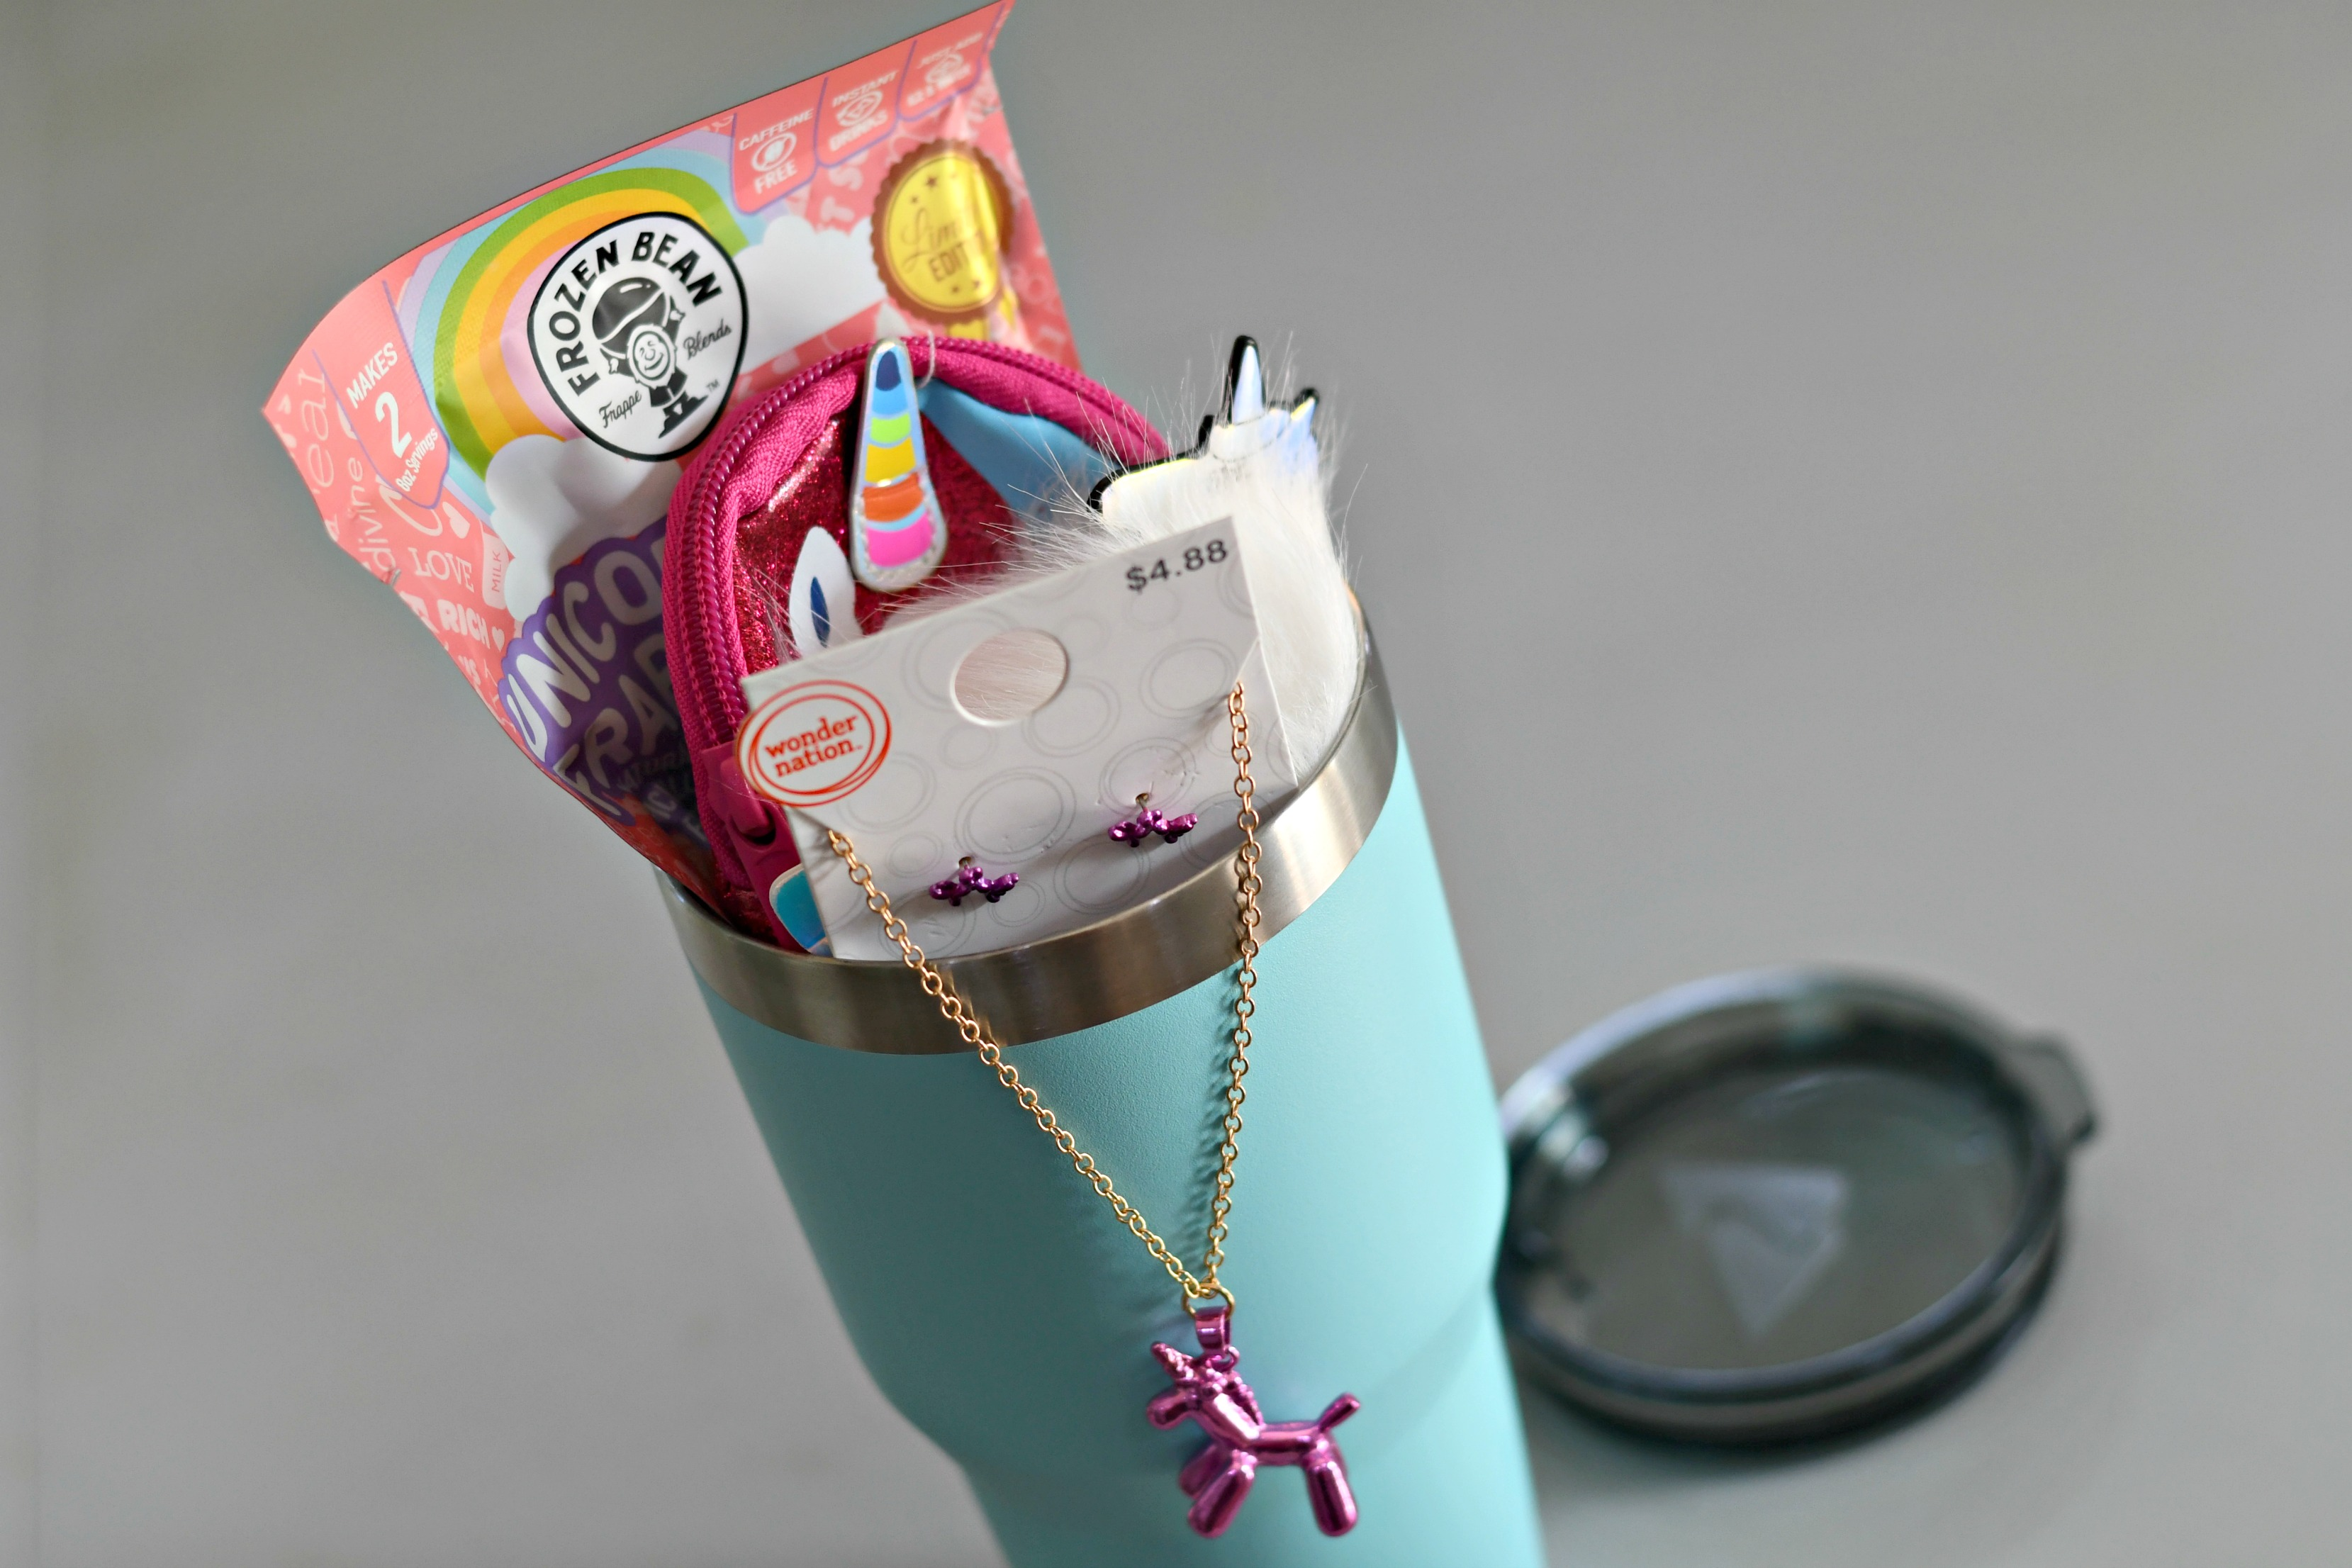 DIY Tumbler Gift basket ideas – Unicorn gift contents in the tumbler